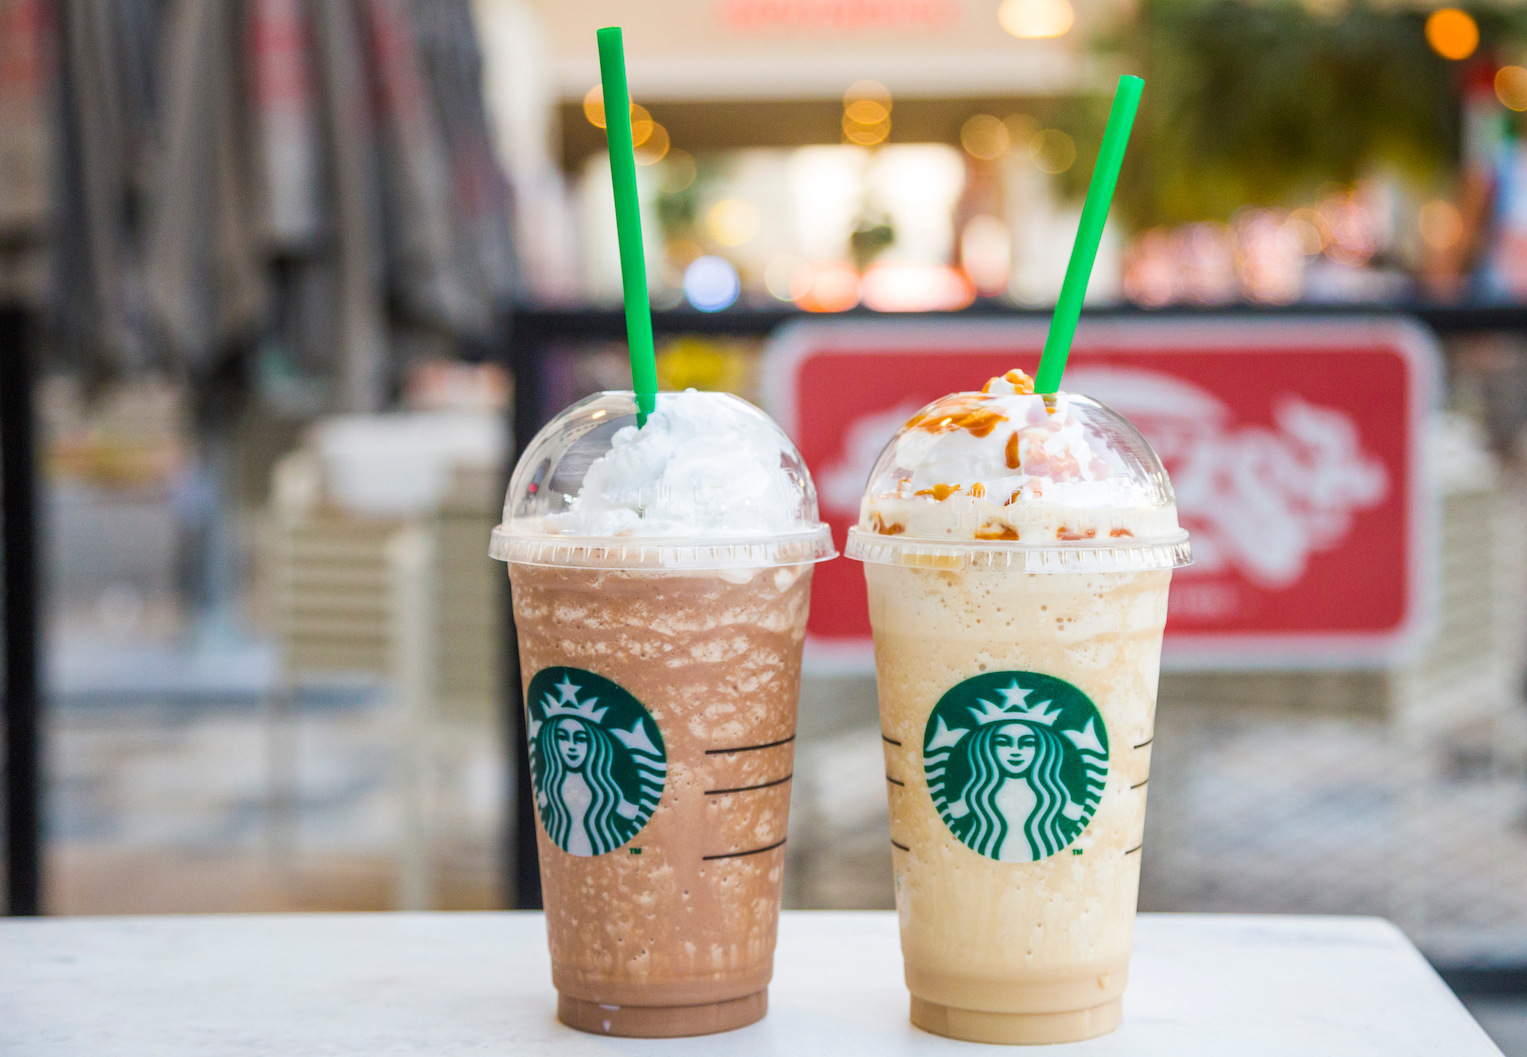 Starbucks announced on Monday that they will be phasing out their single-use plastic straws worldwide by 2020.